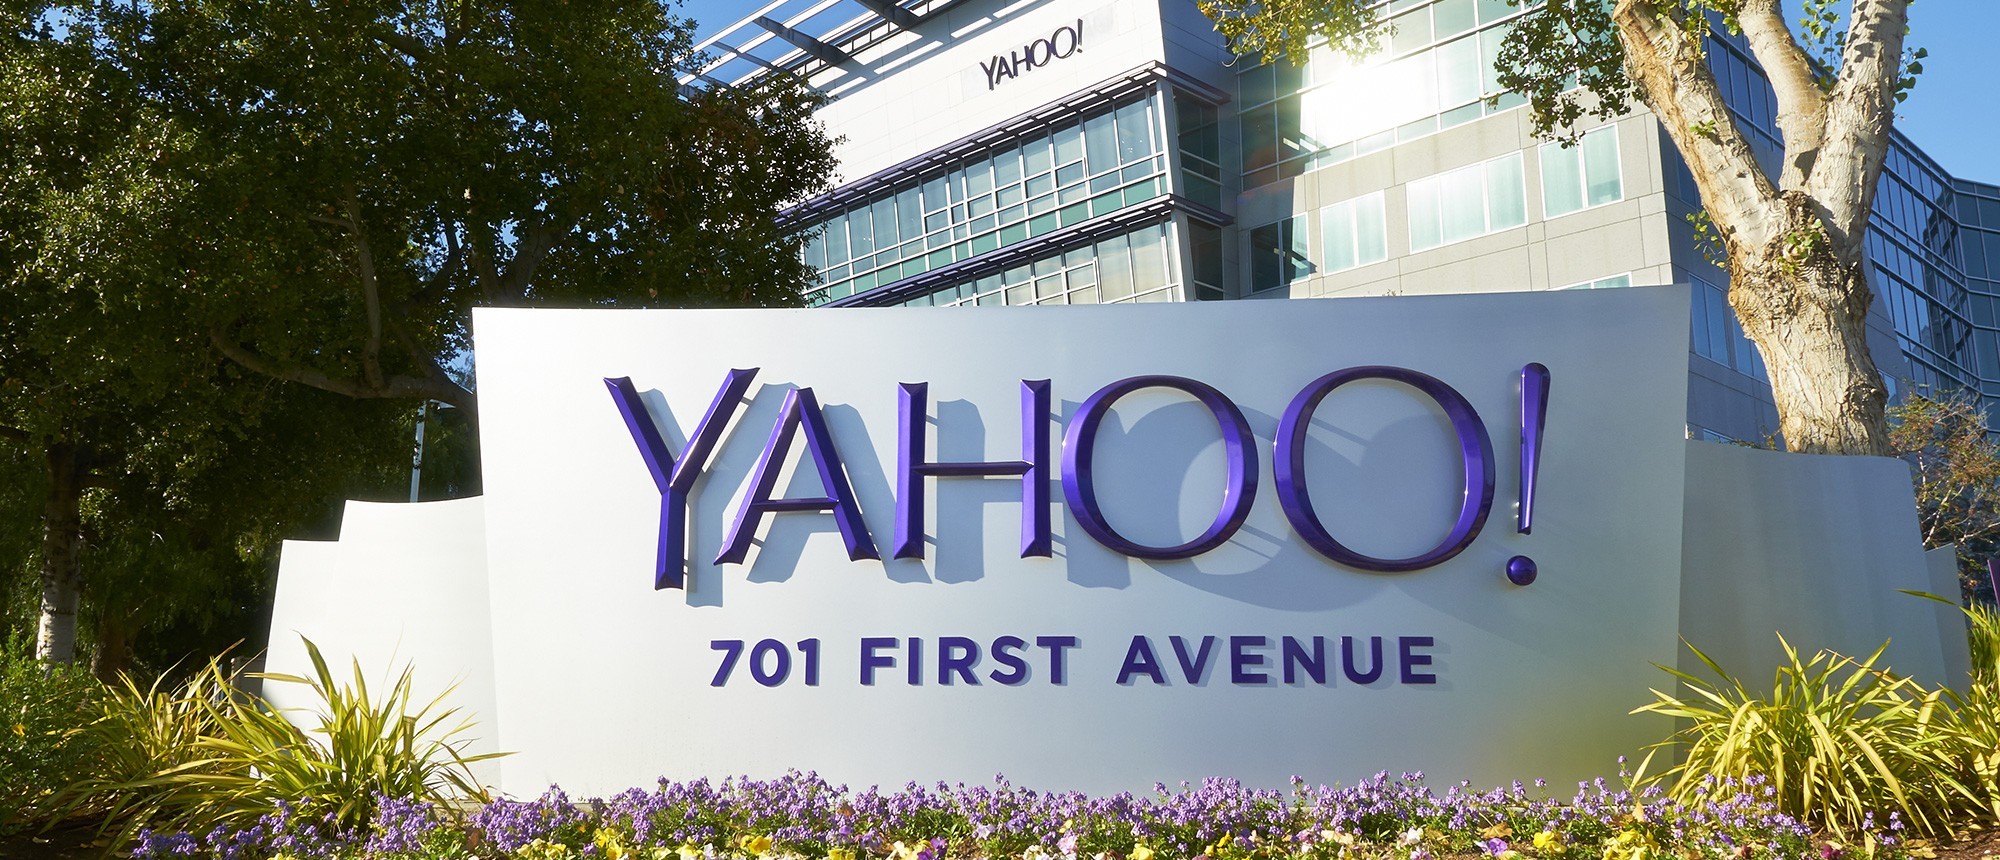 SEC Preparing Probe into Yahoo Over Hacks